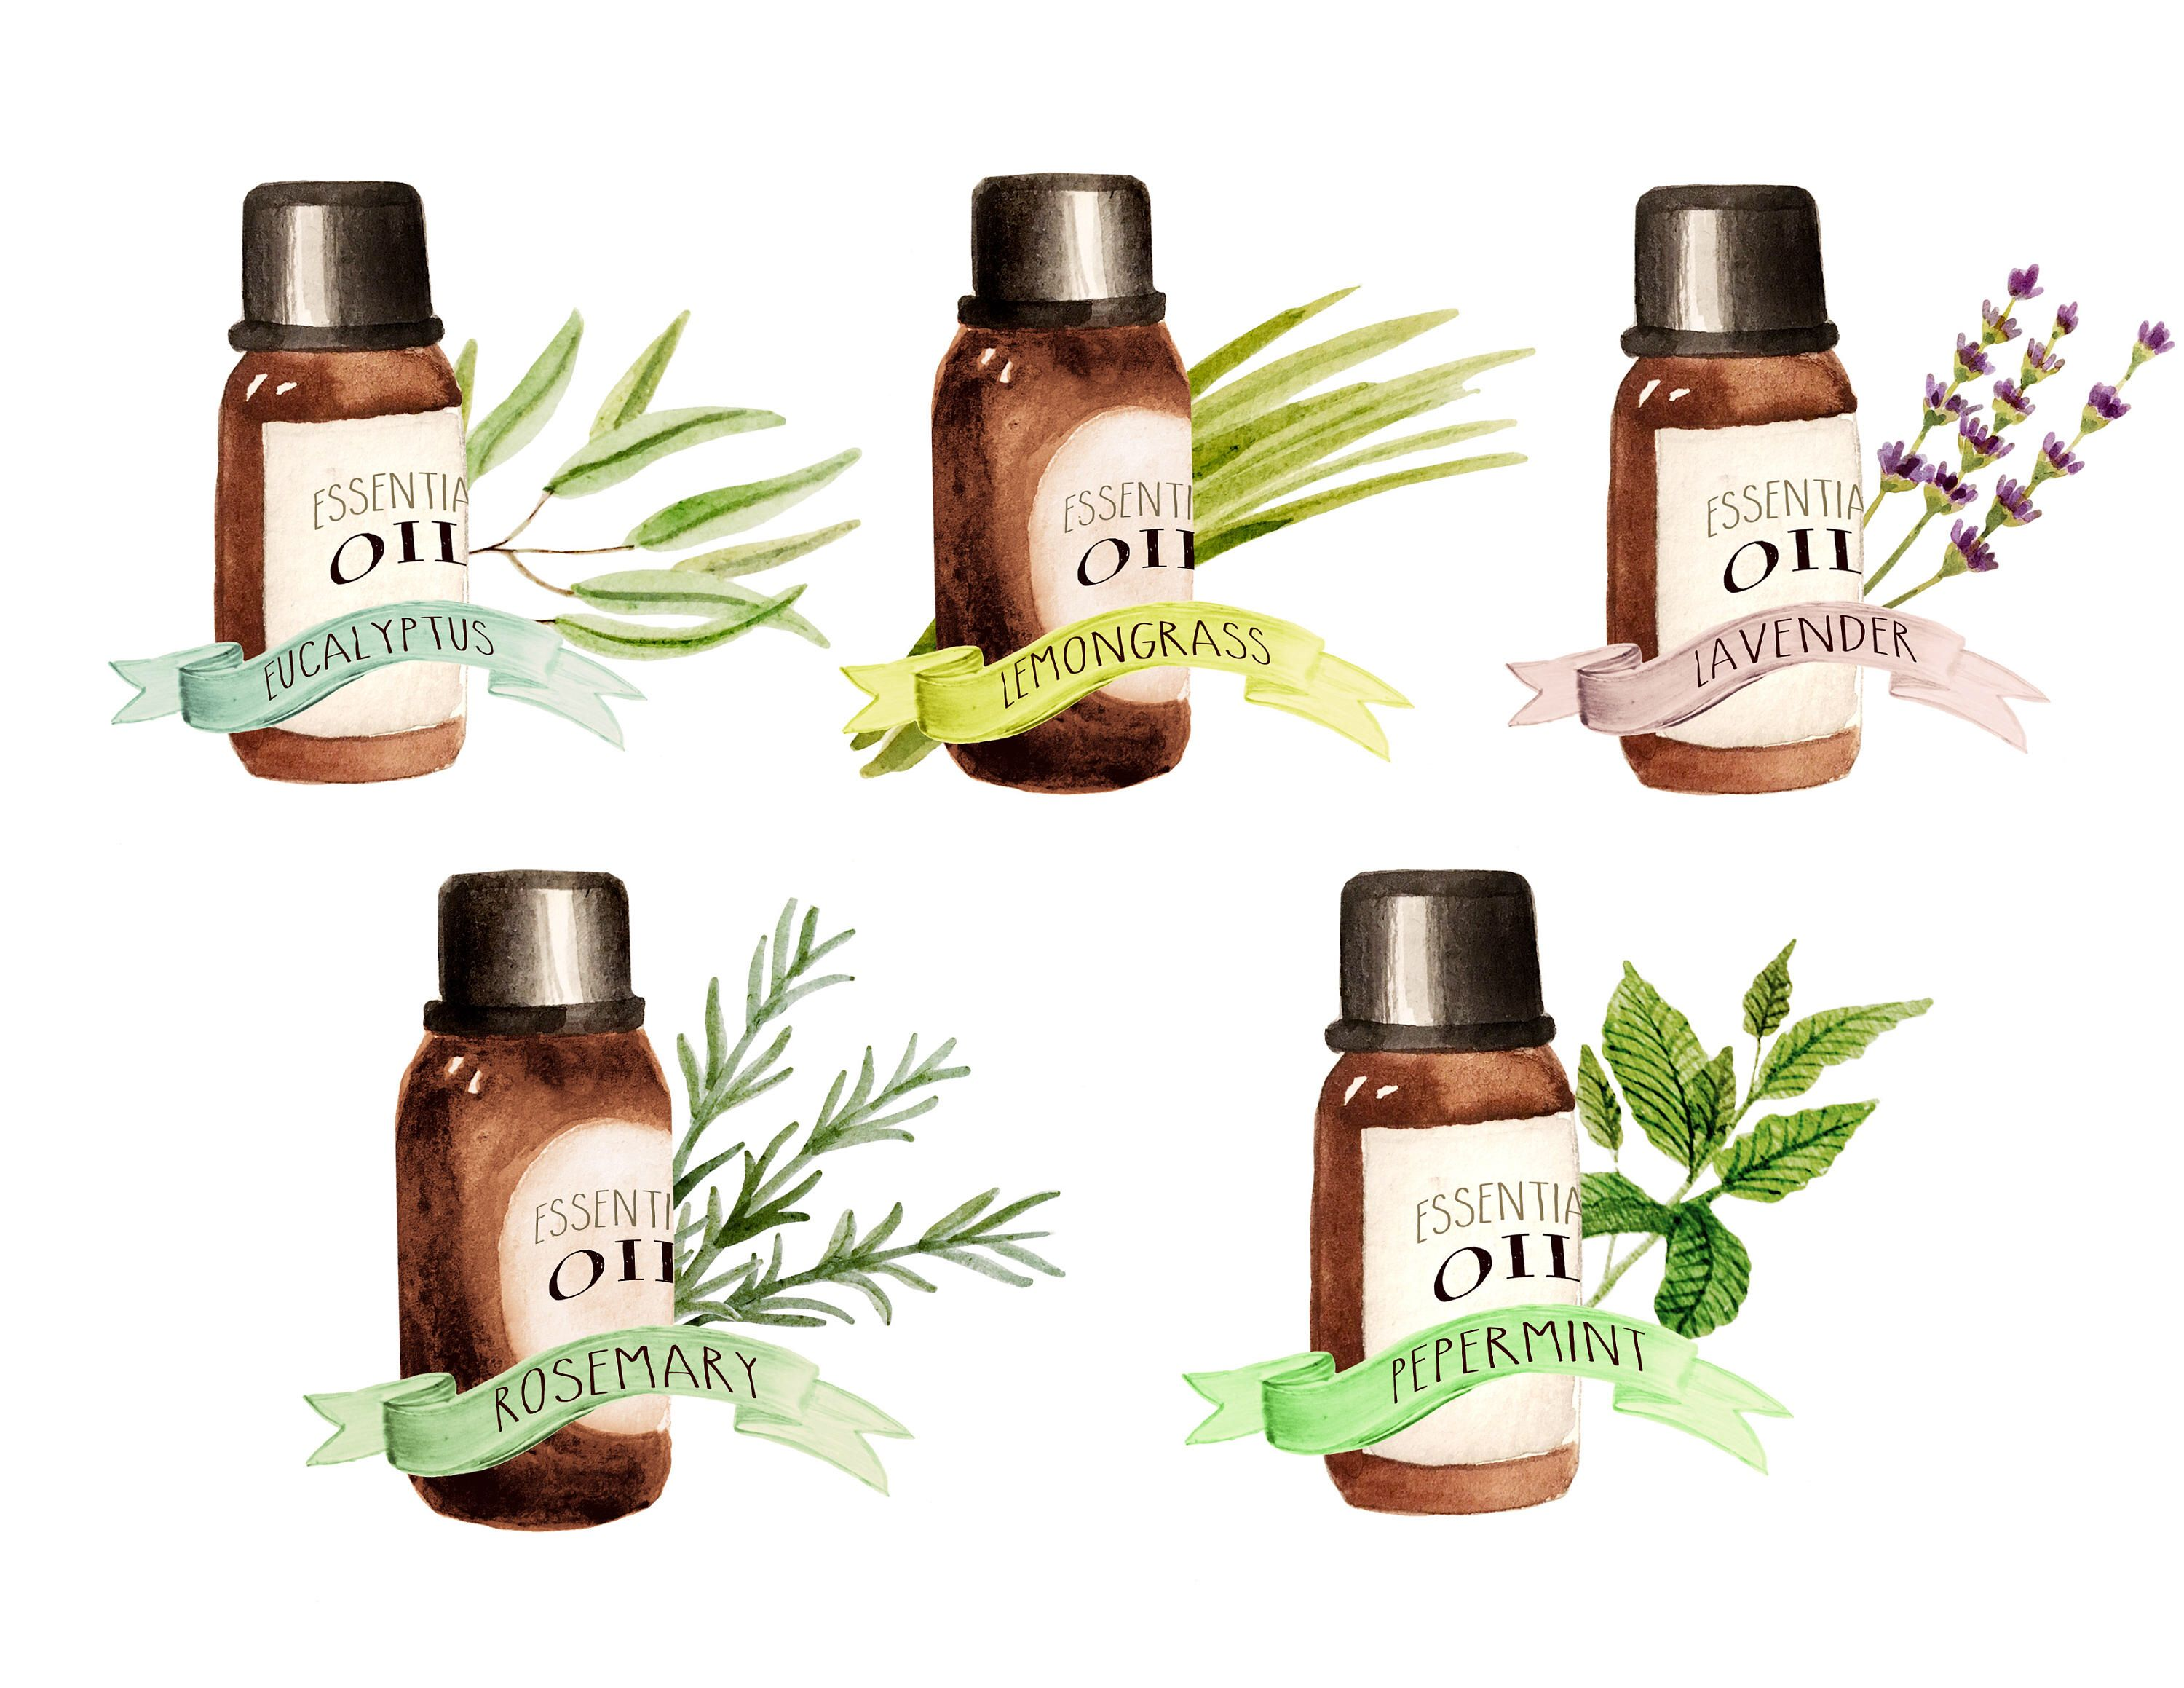 Free Essential Oils Cliparts, Download Free Clip Art, Free Clip Art.